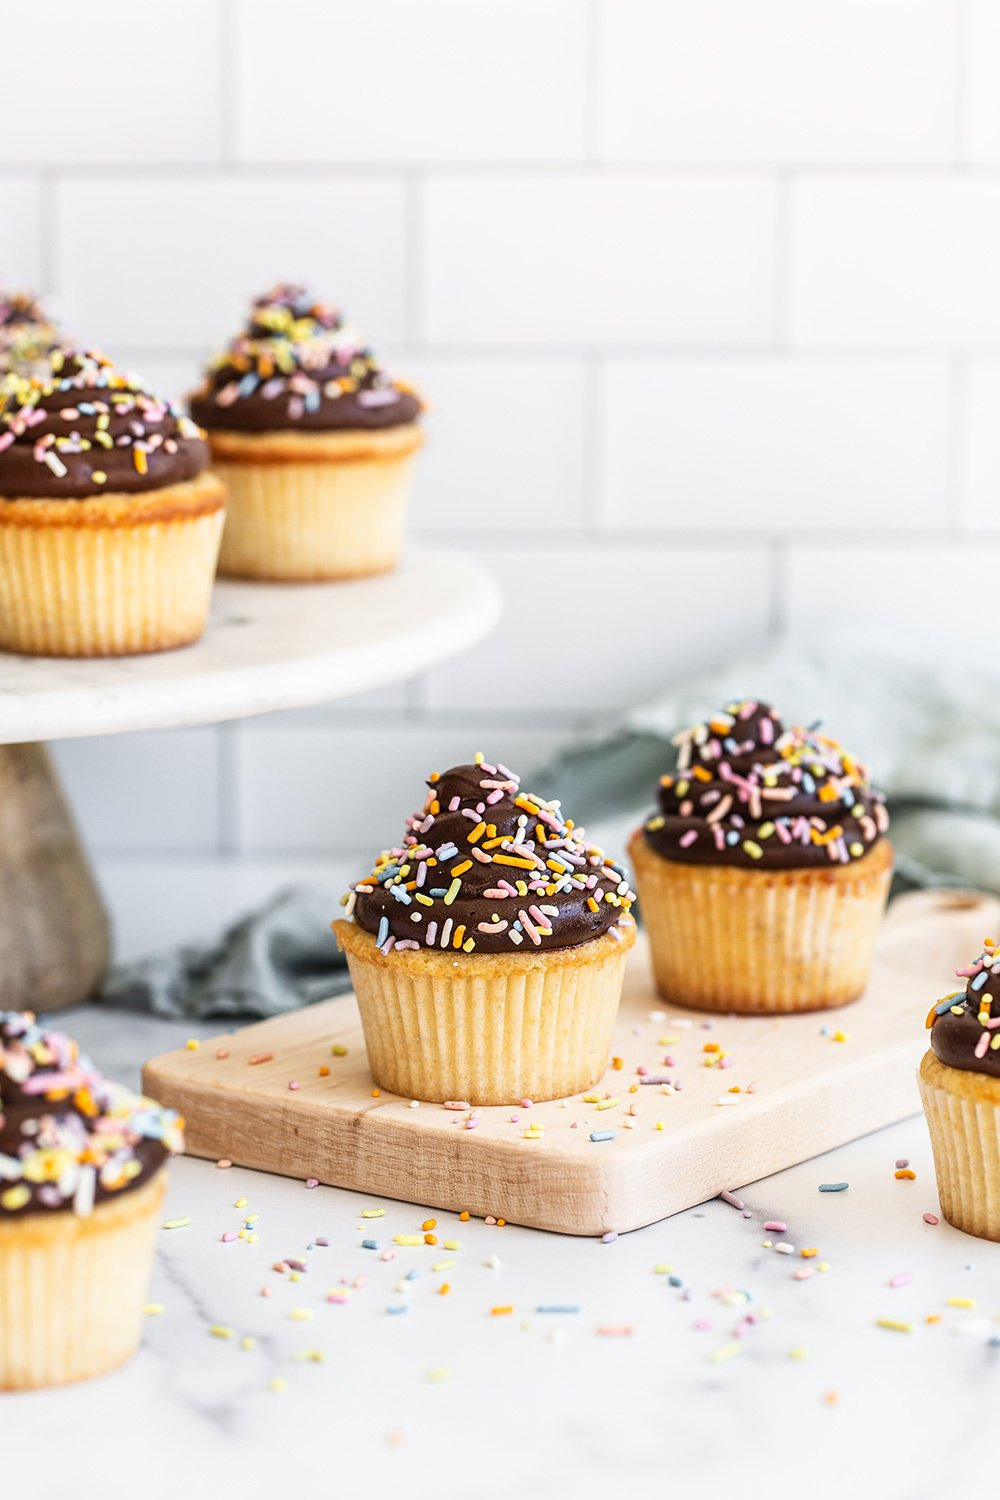 yellow birthday cupcakes with chocolate frosting and sprinkles on a wood board and platter behind